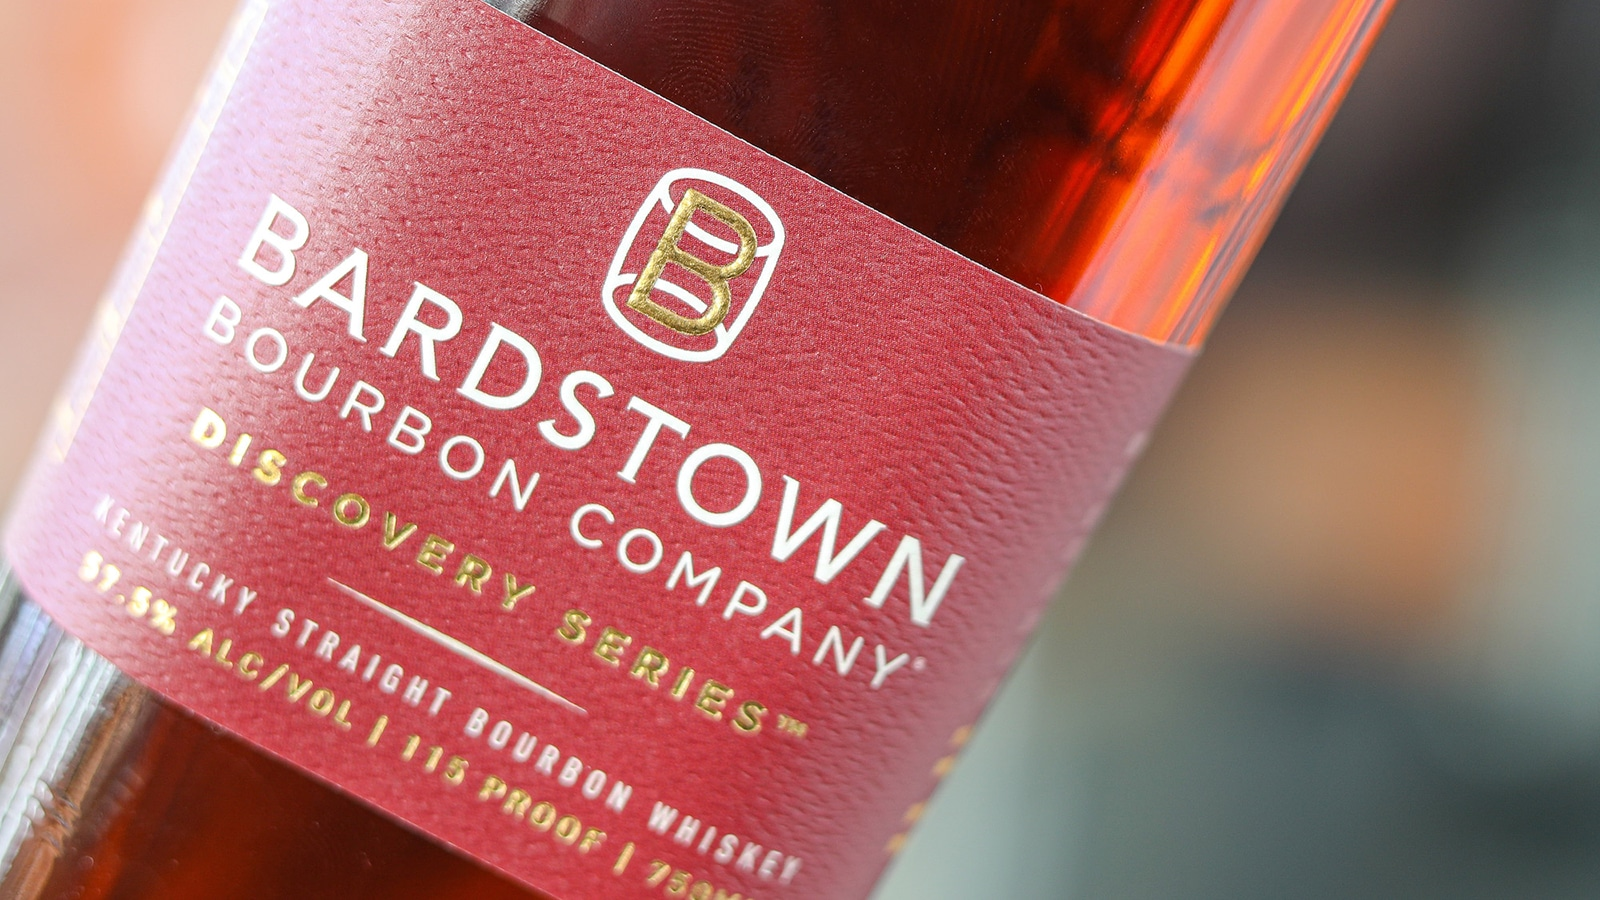 Bardstown Discovery Series 4